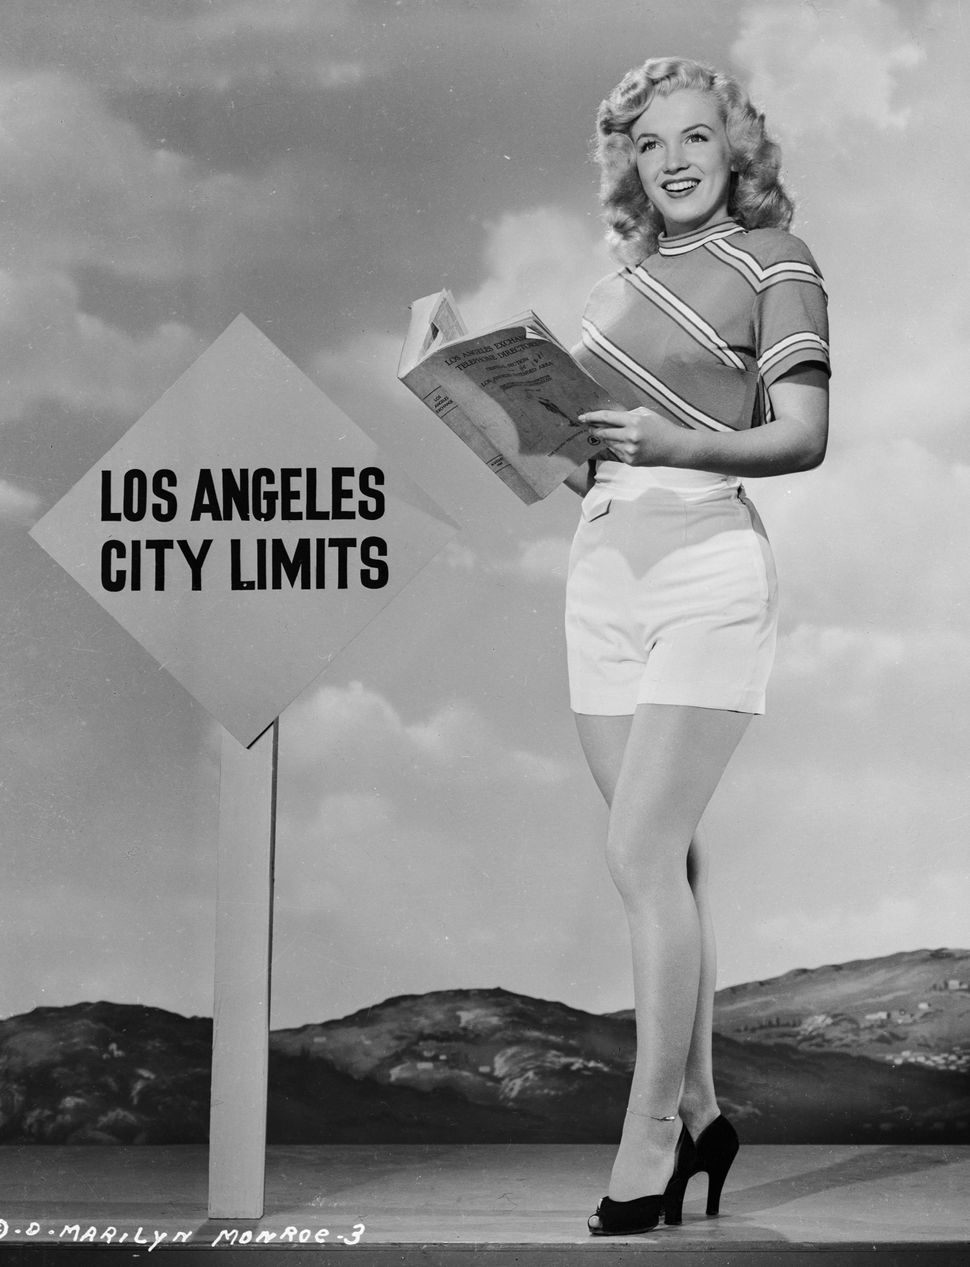 Marilyn Monroe reading an L.A. telephone directory near the Los Angeles city limits, circa 1947.